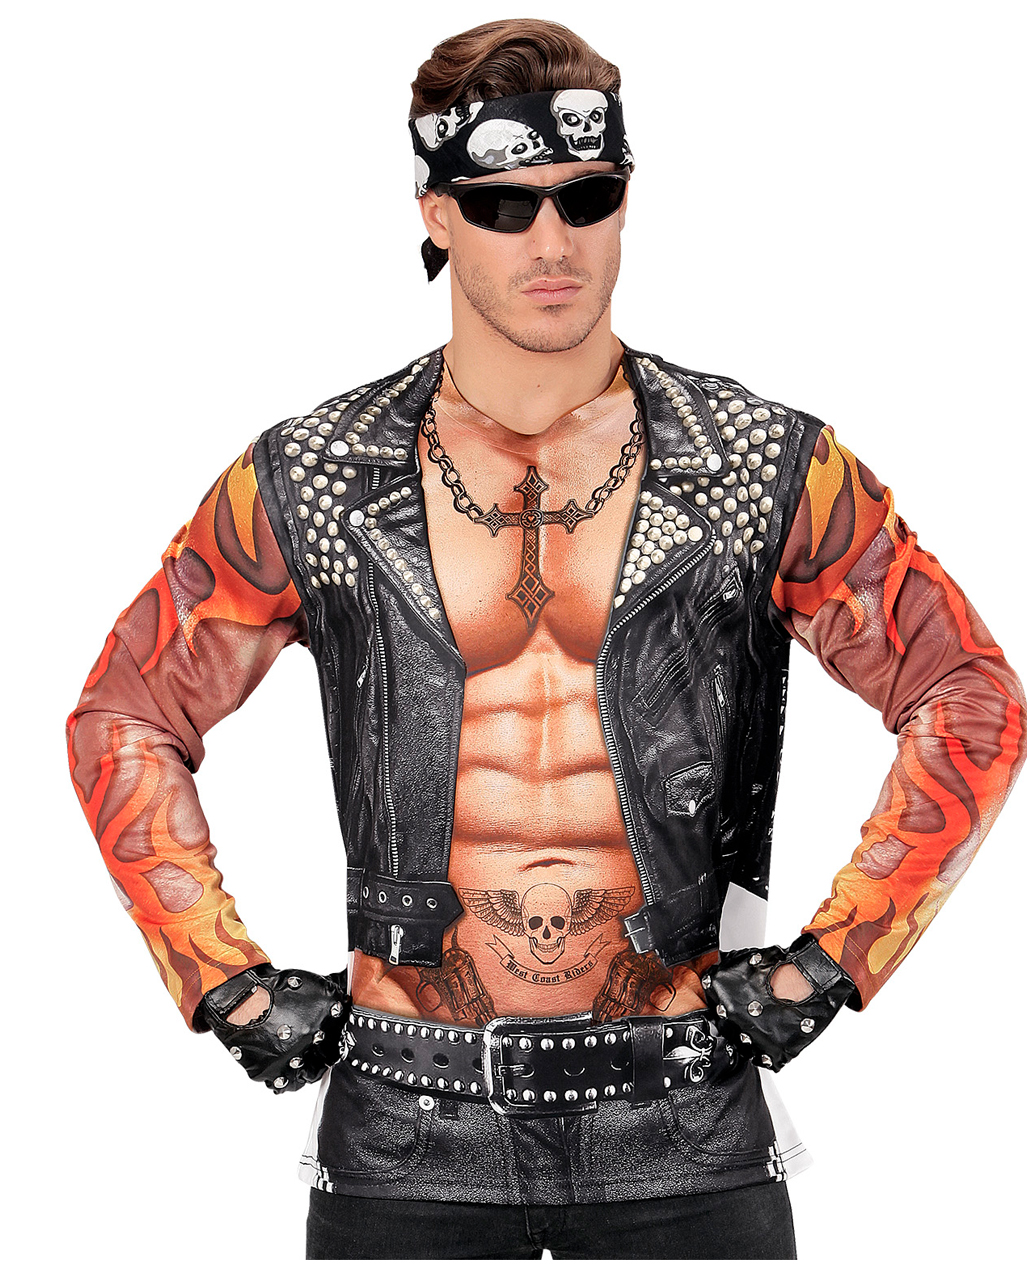 Men S Fancy Dress Fancy Dresses Men S Fancy Dress Men Costume Long Tshirt Biker Tattoo Realistic Fancy Dress Ladiescorner Co In